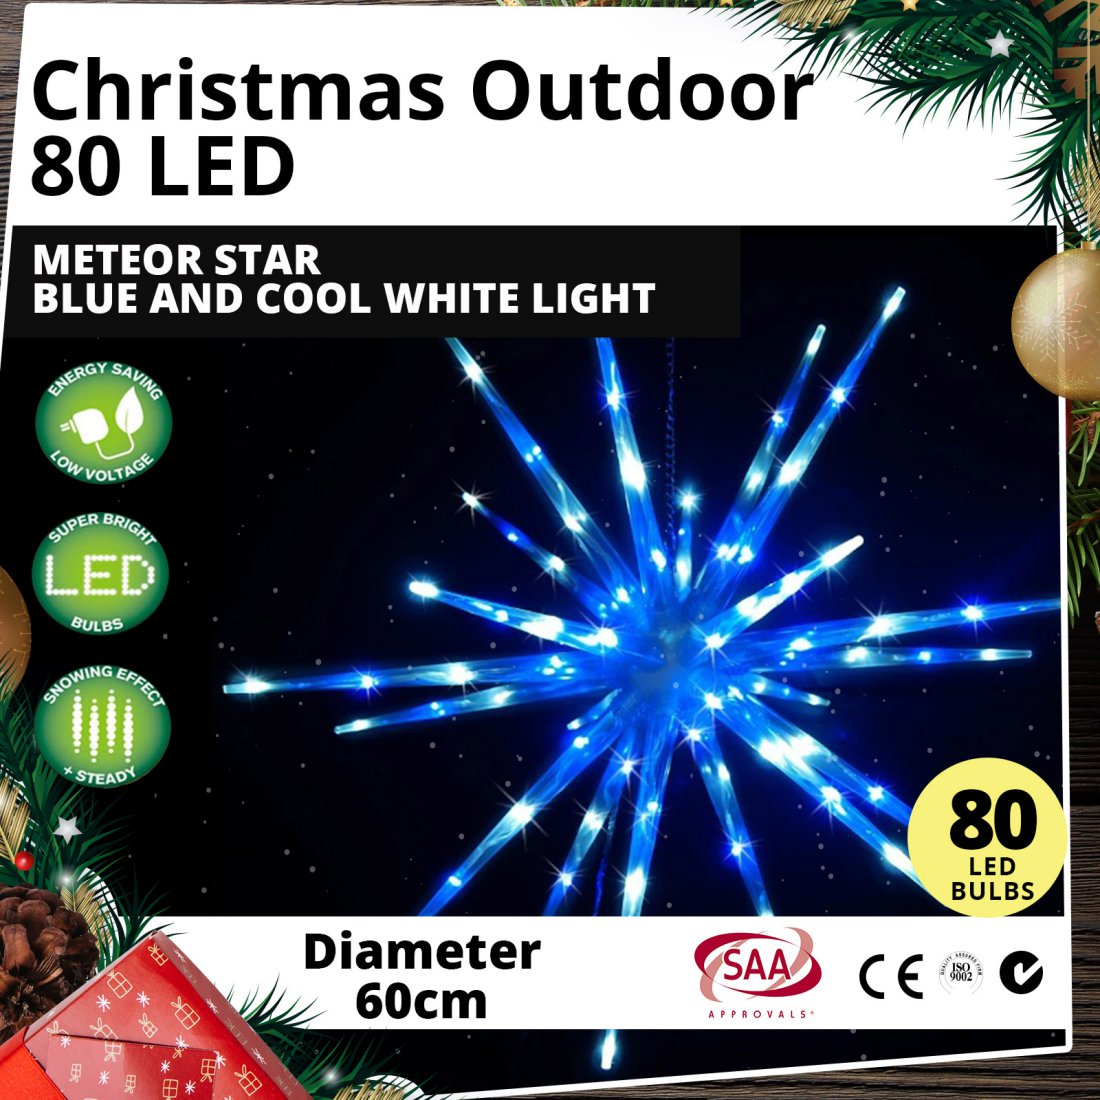 Outdoor 80 LED 60cm Meteor Star Blue White Light Christmas Display